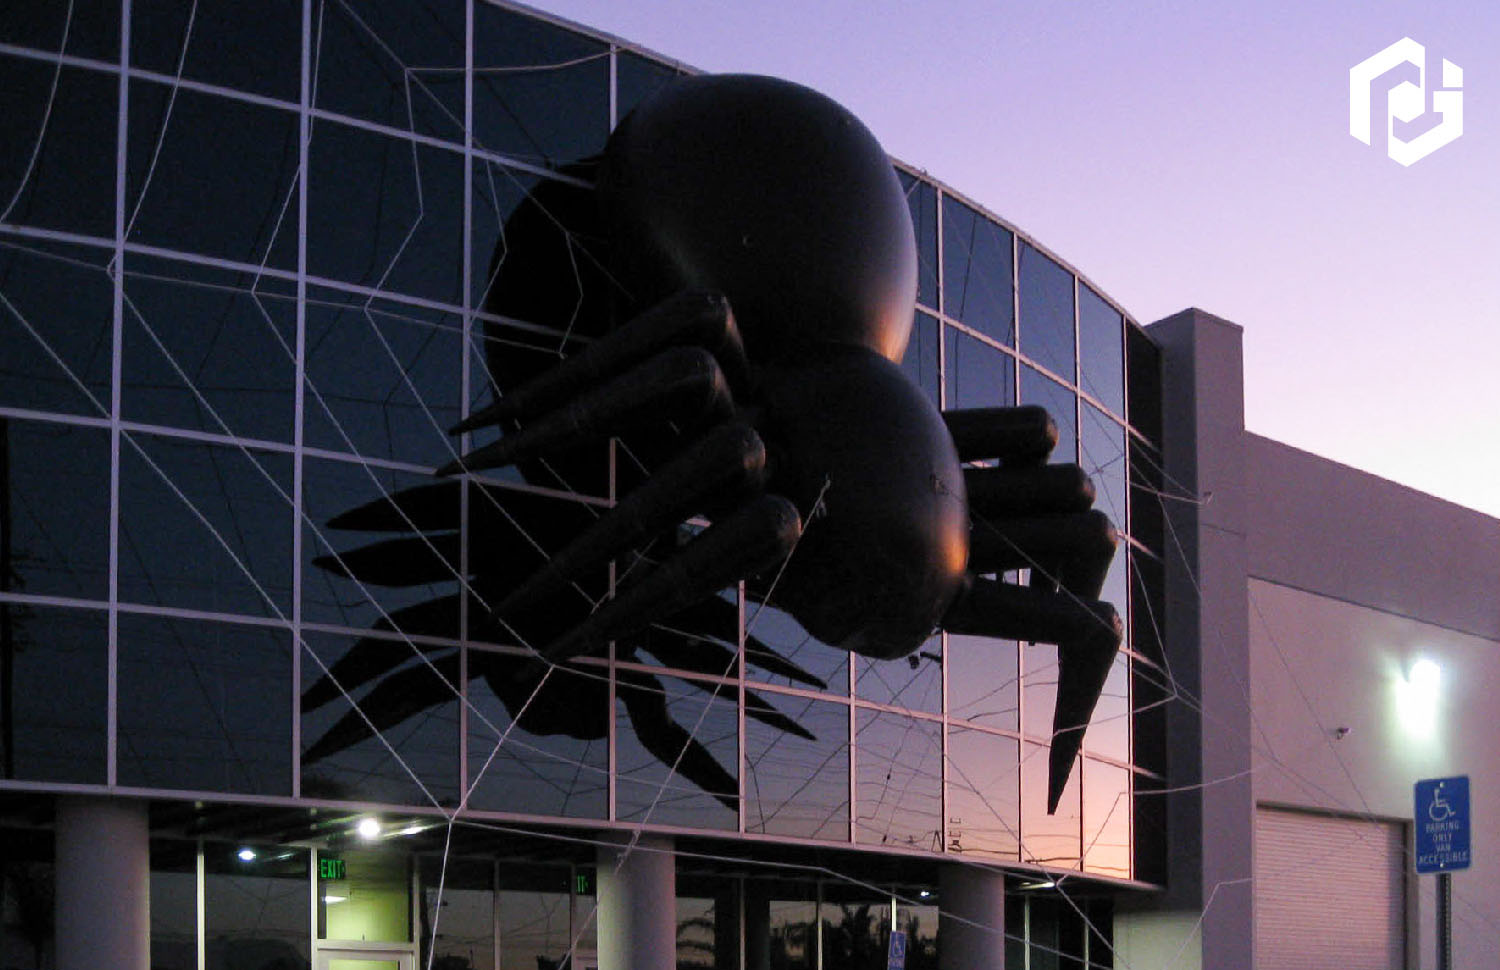 25-foot-spider-on-building